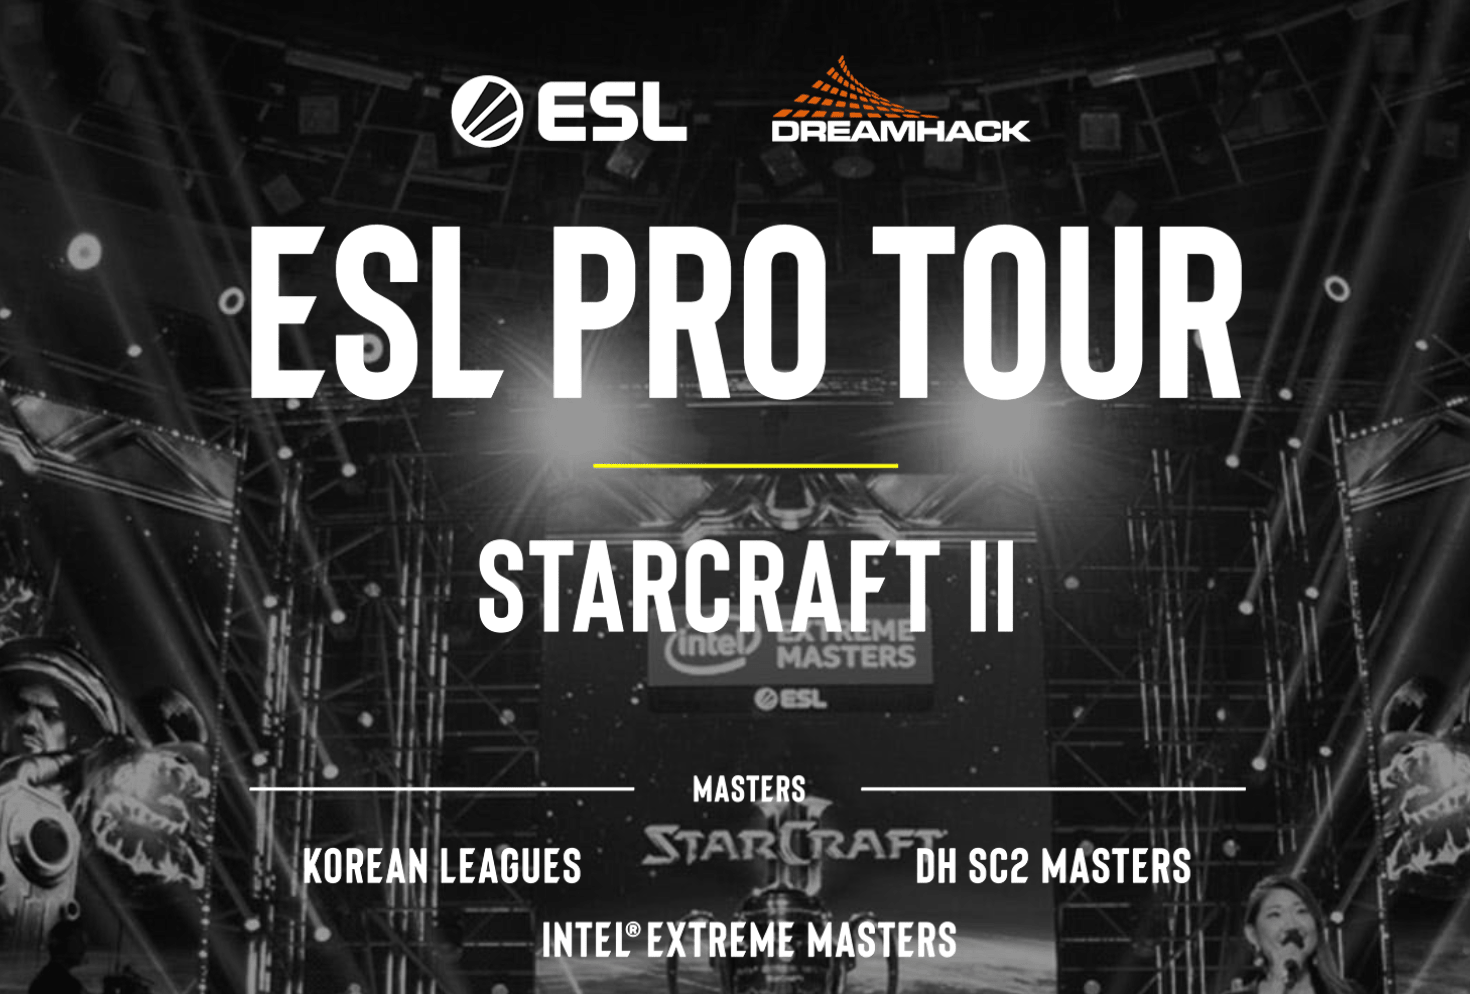 Blizzard unveils new StarCraft II esport partnership with ESL and DreamHack